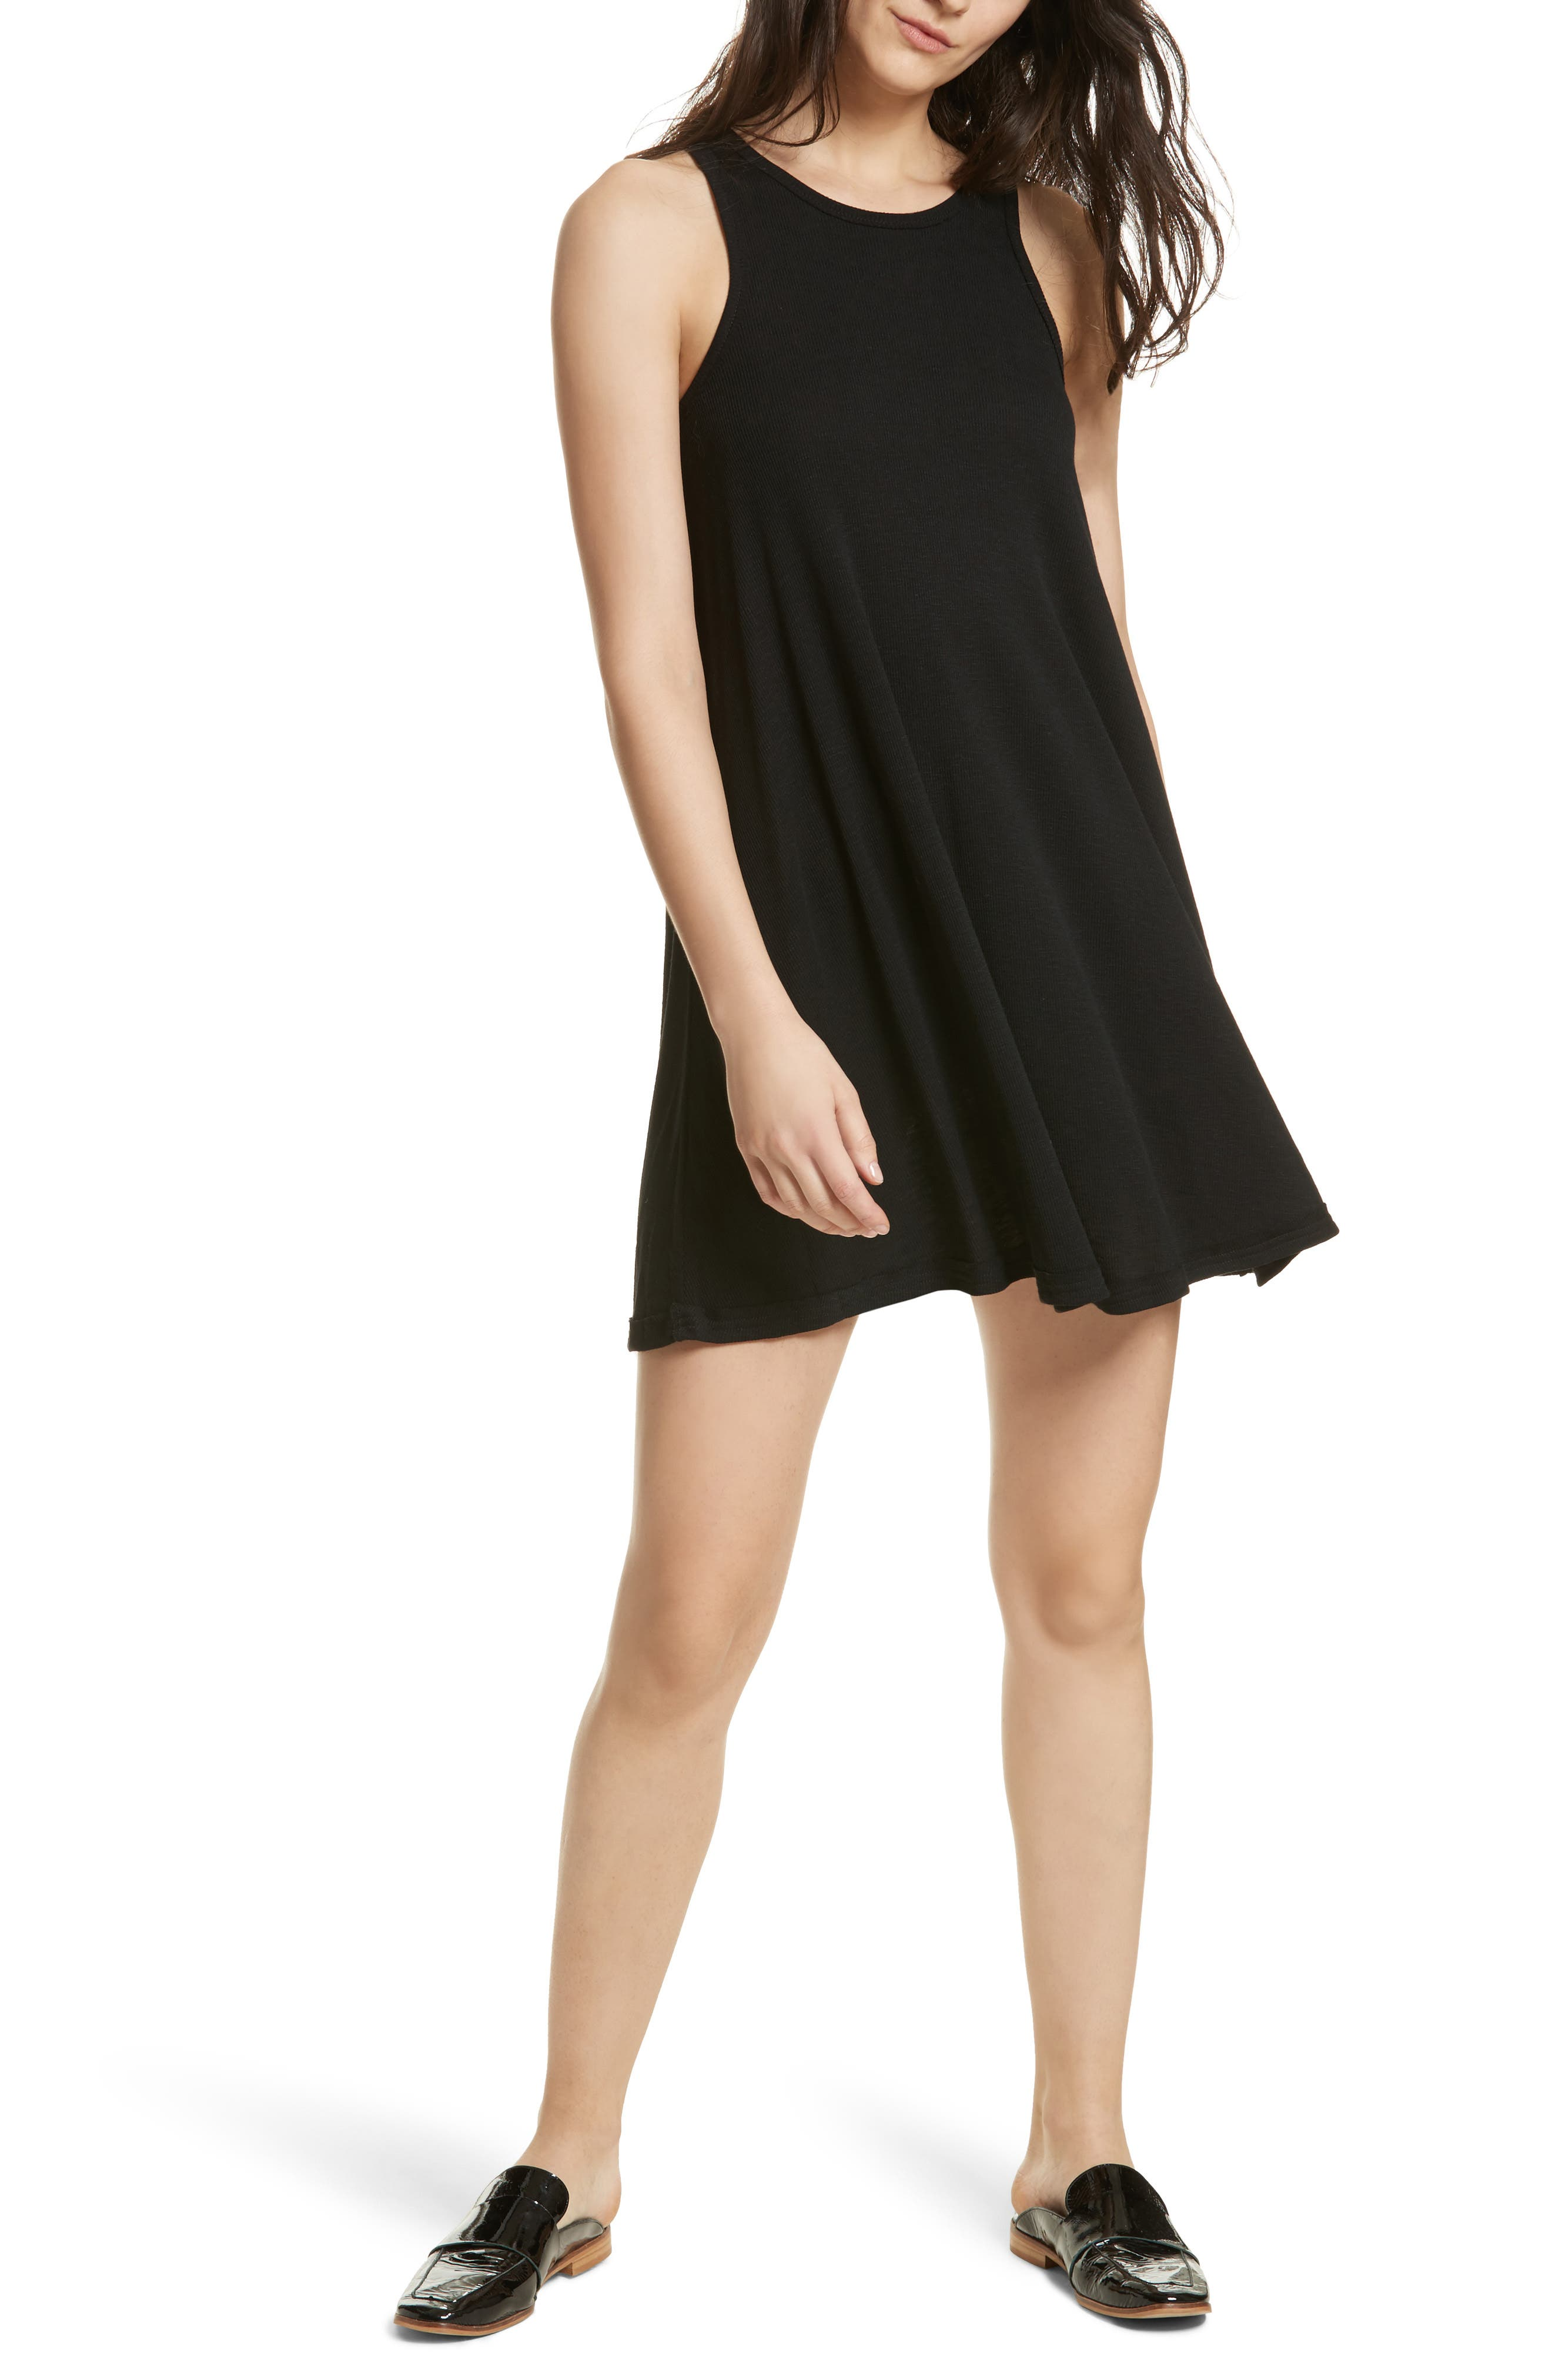 LA Nite Tank Dress,                             Main thumbnail 1, color,                             001